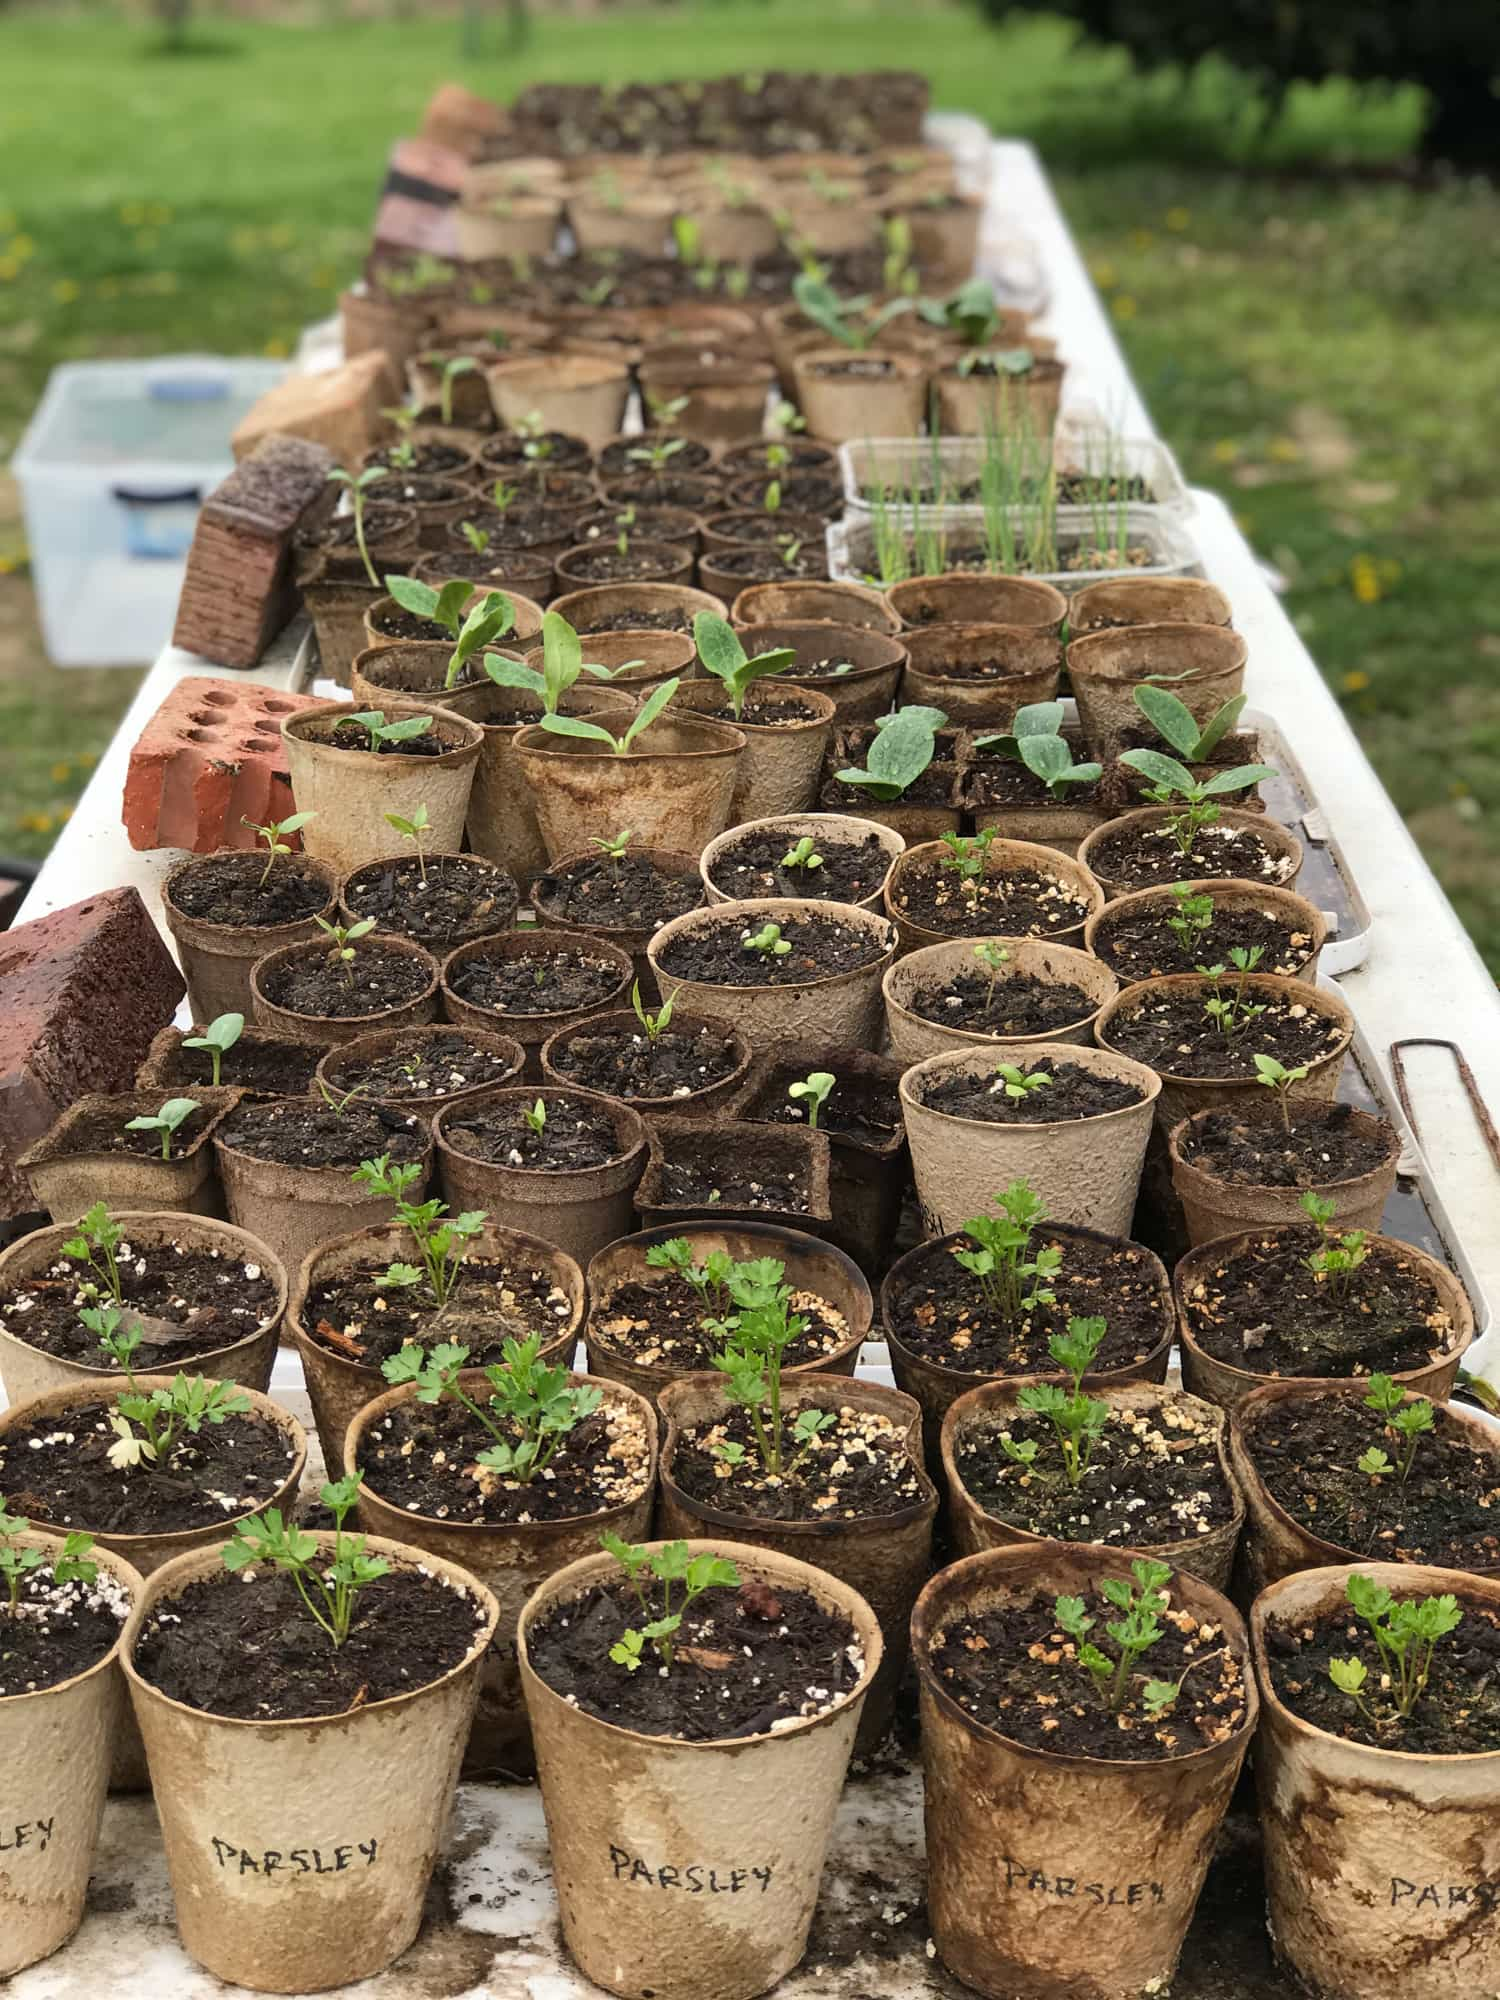 Table filled with containers of seedlings for a vegetable garden.